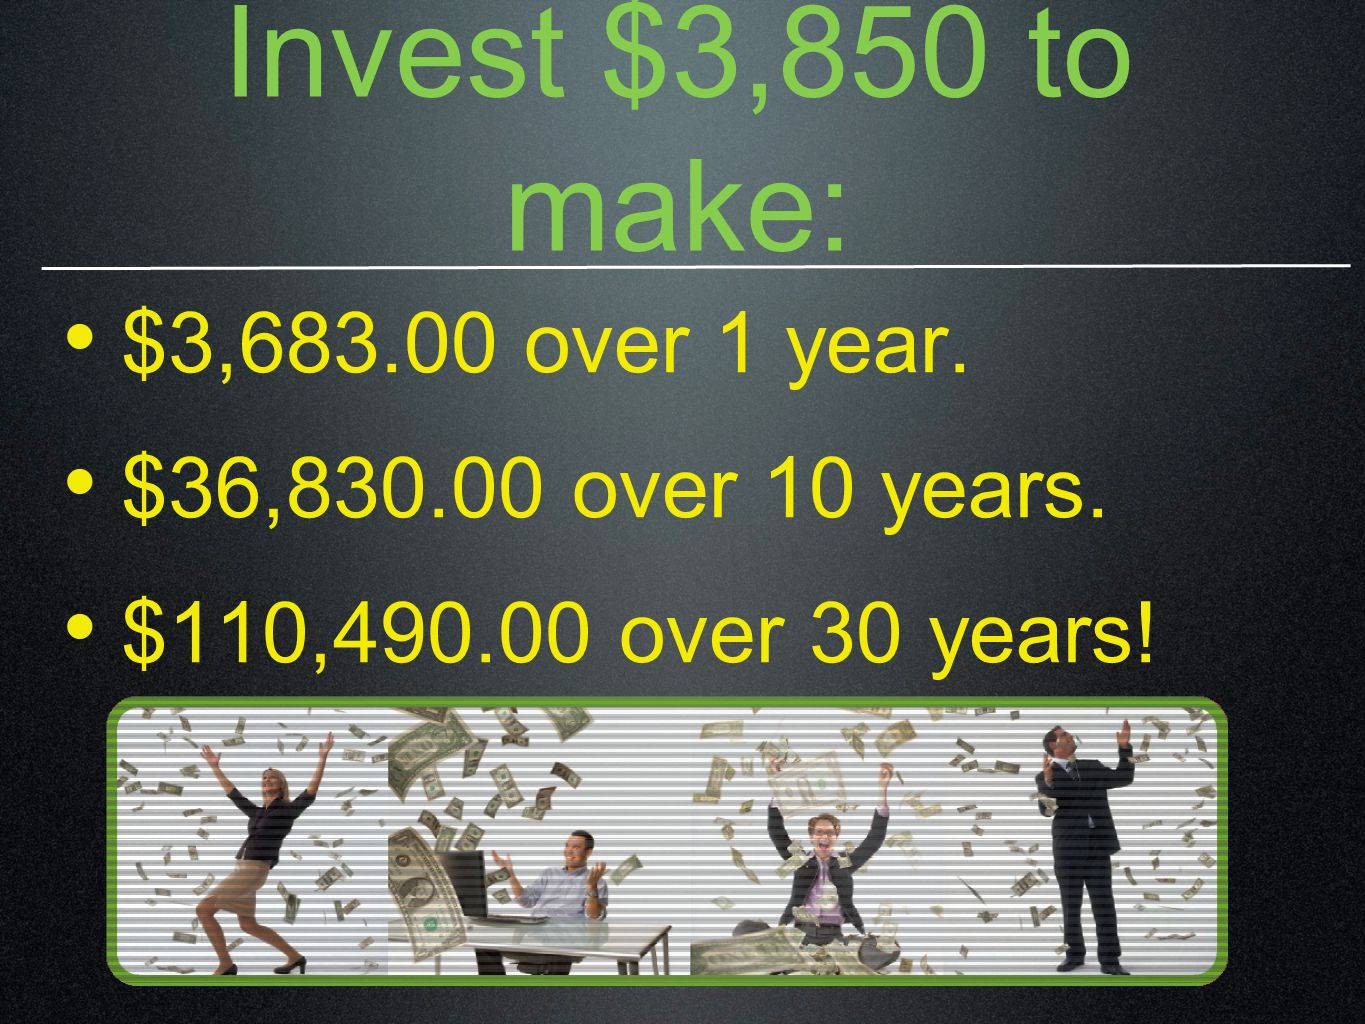 Invest $3,850 to make: $3,683.00 over 1 year. $36,830.00 over 10 years. $110,490.00 over 30 years!